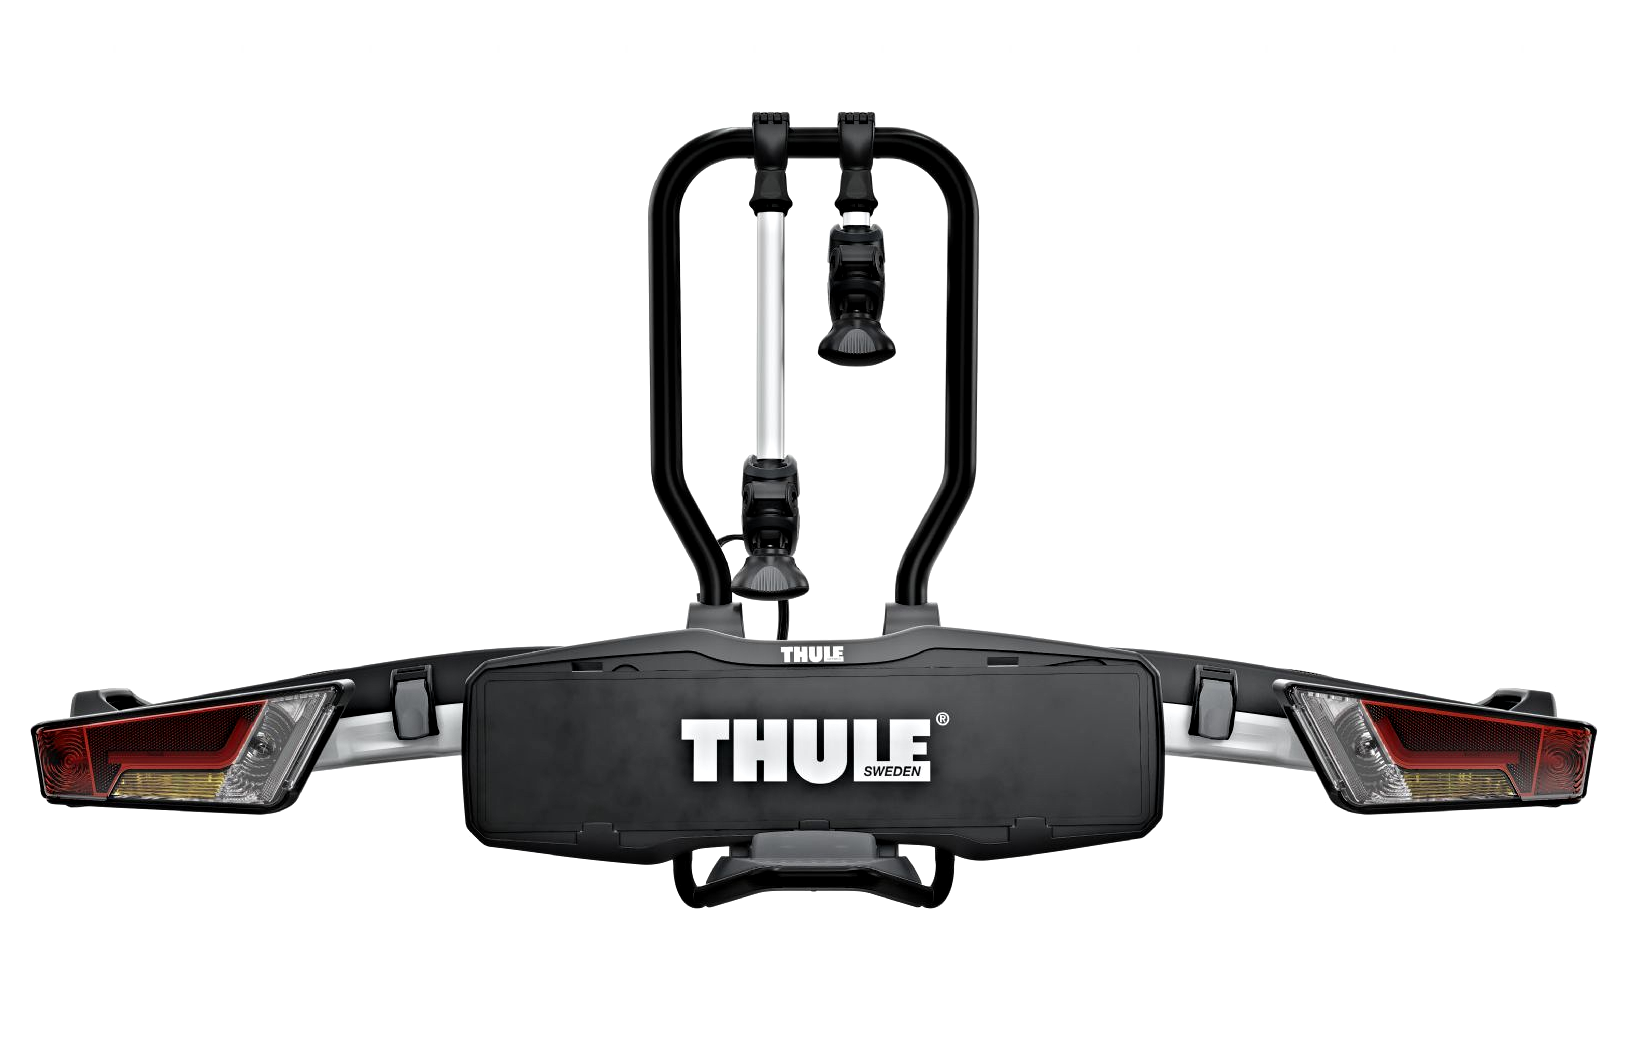 thule 933 easyfold 2 bike xt cycle carrier rack tow bar. Black Bedroom Furniture Sets. Home Design Ideas